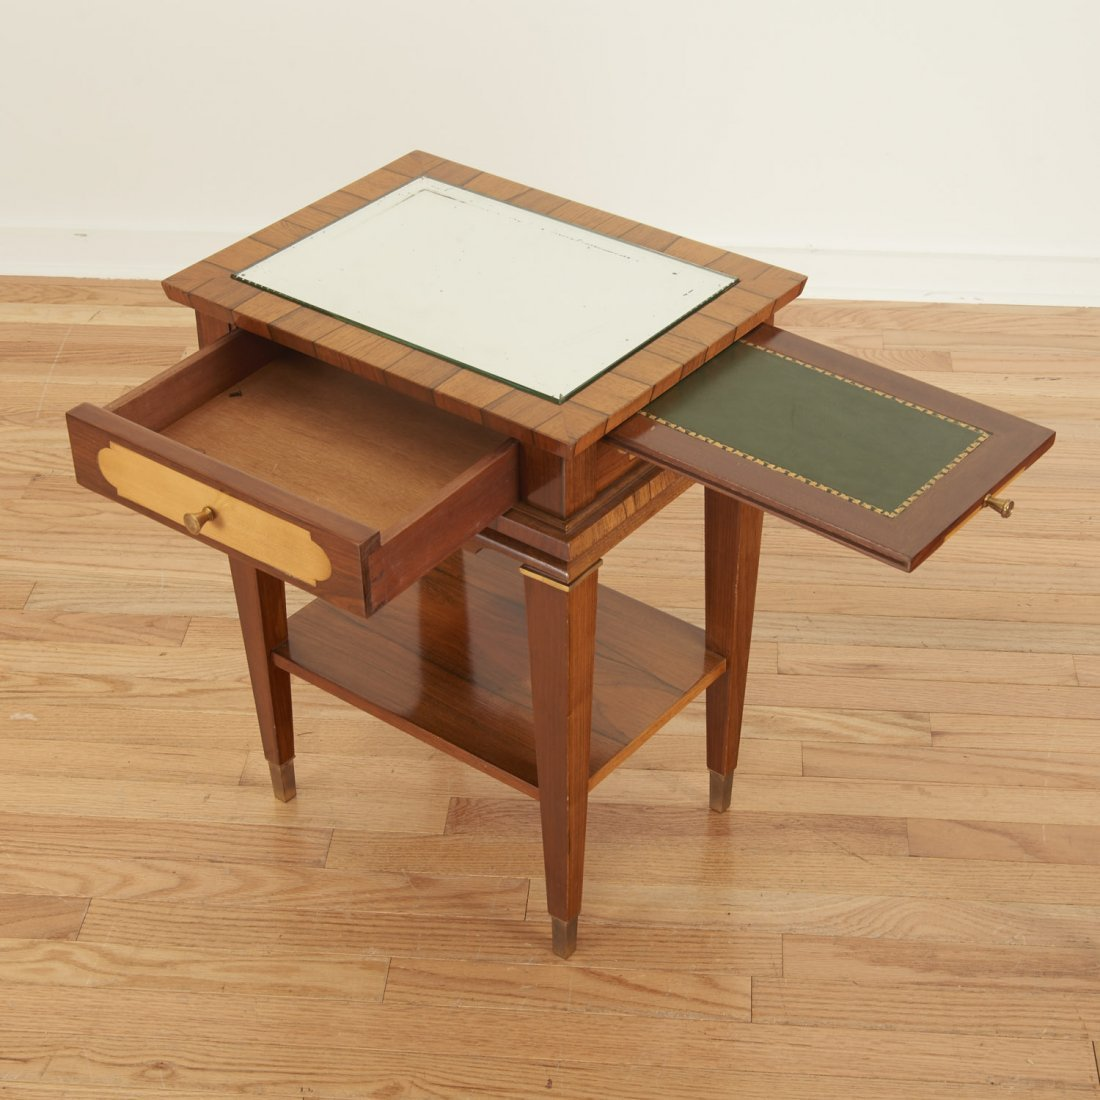 Manner Maxime Old near pair side tables - 4